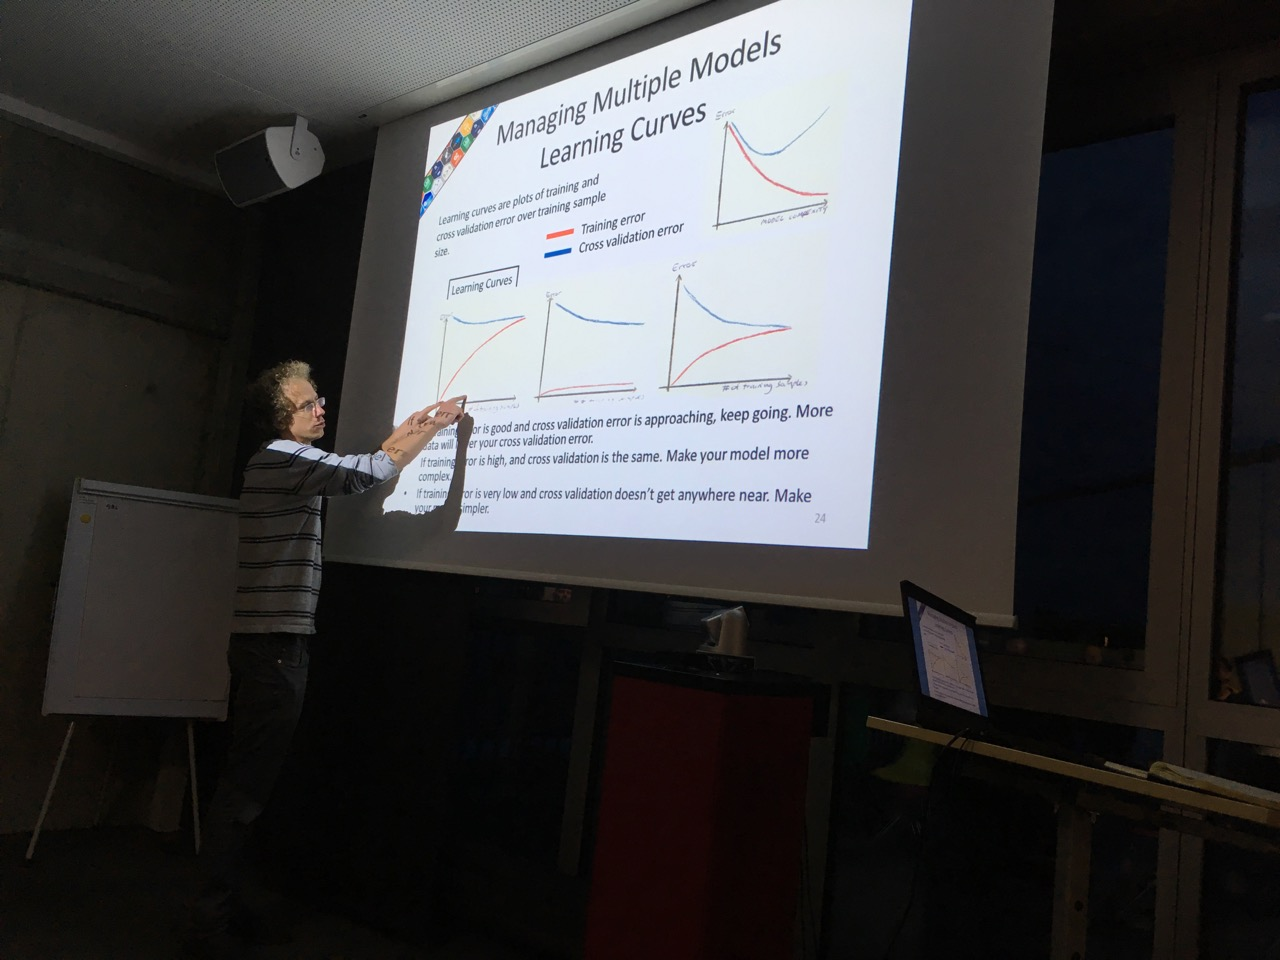 Notes from the Kölner R meeting, 14 October 2016 | mages' blog